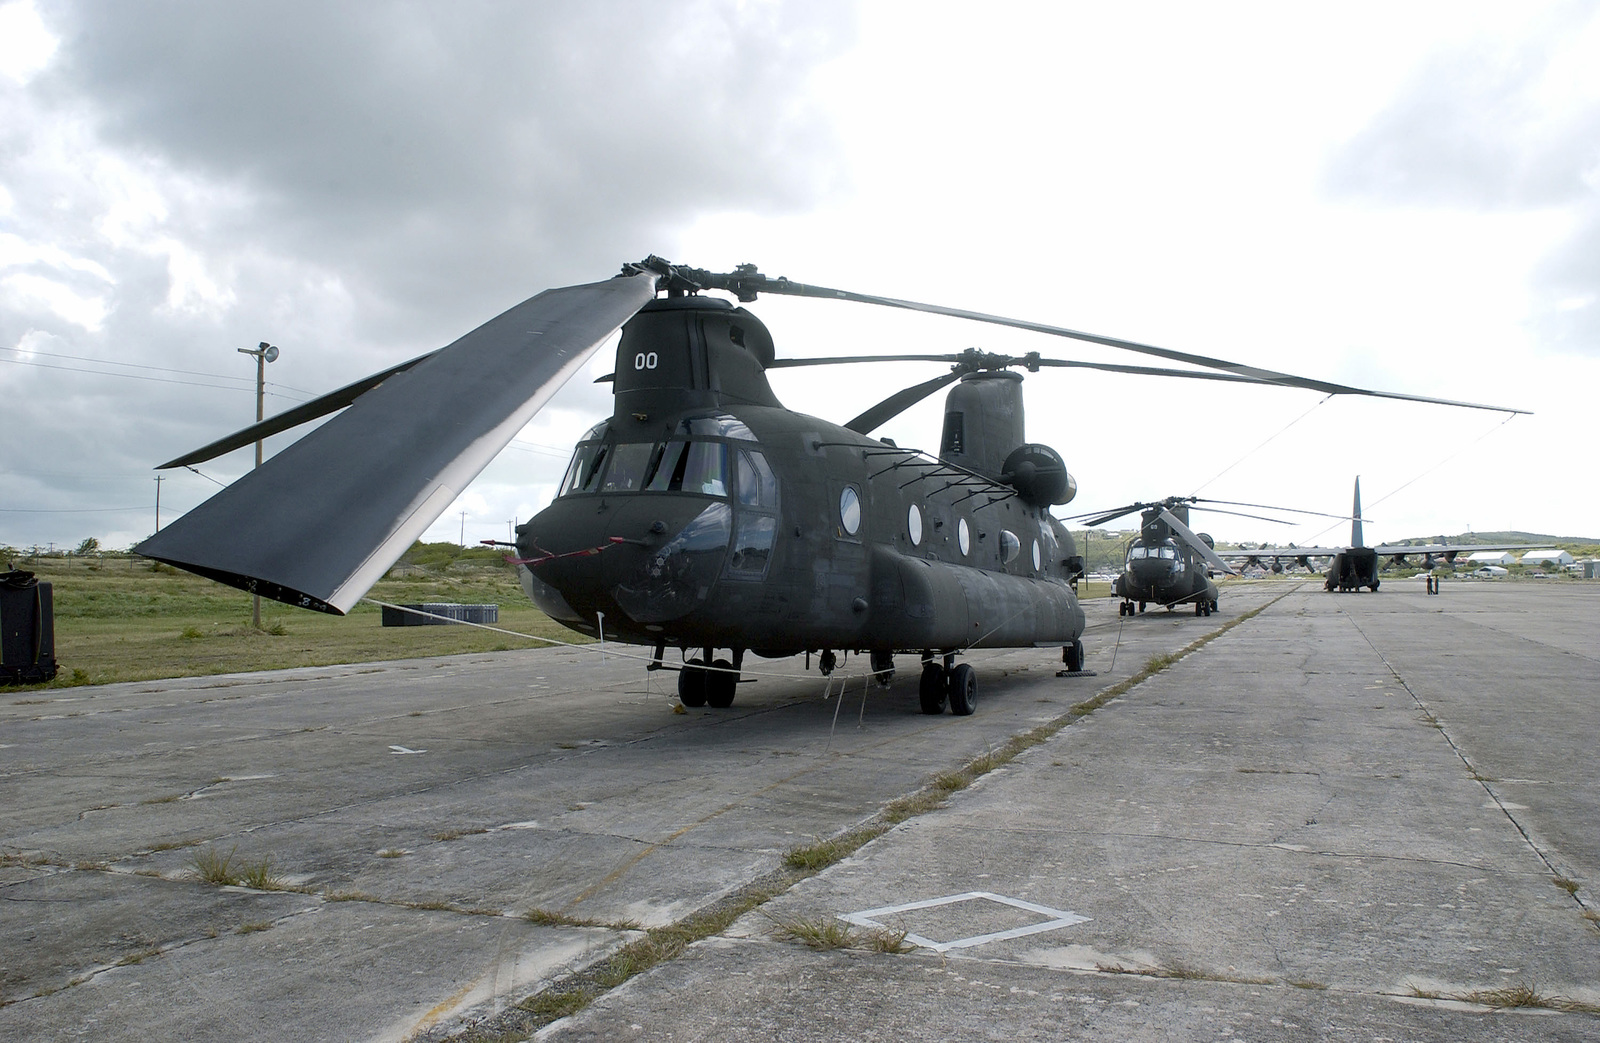 Two CH-47 Chinook helicopters from the Nevada Army National Guard (ANG), Detachment 1, Company G, 140th Aviation and a US Air Force (USAF) C-130 cargo aircraft from the Tennessee ANG, 118th Air Wing (AW), from Nashville, sit on the tarmac at the Bird International Airport, during the Tradewinds 2002 Field Training Exercise (FTX), on the island of Antigua